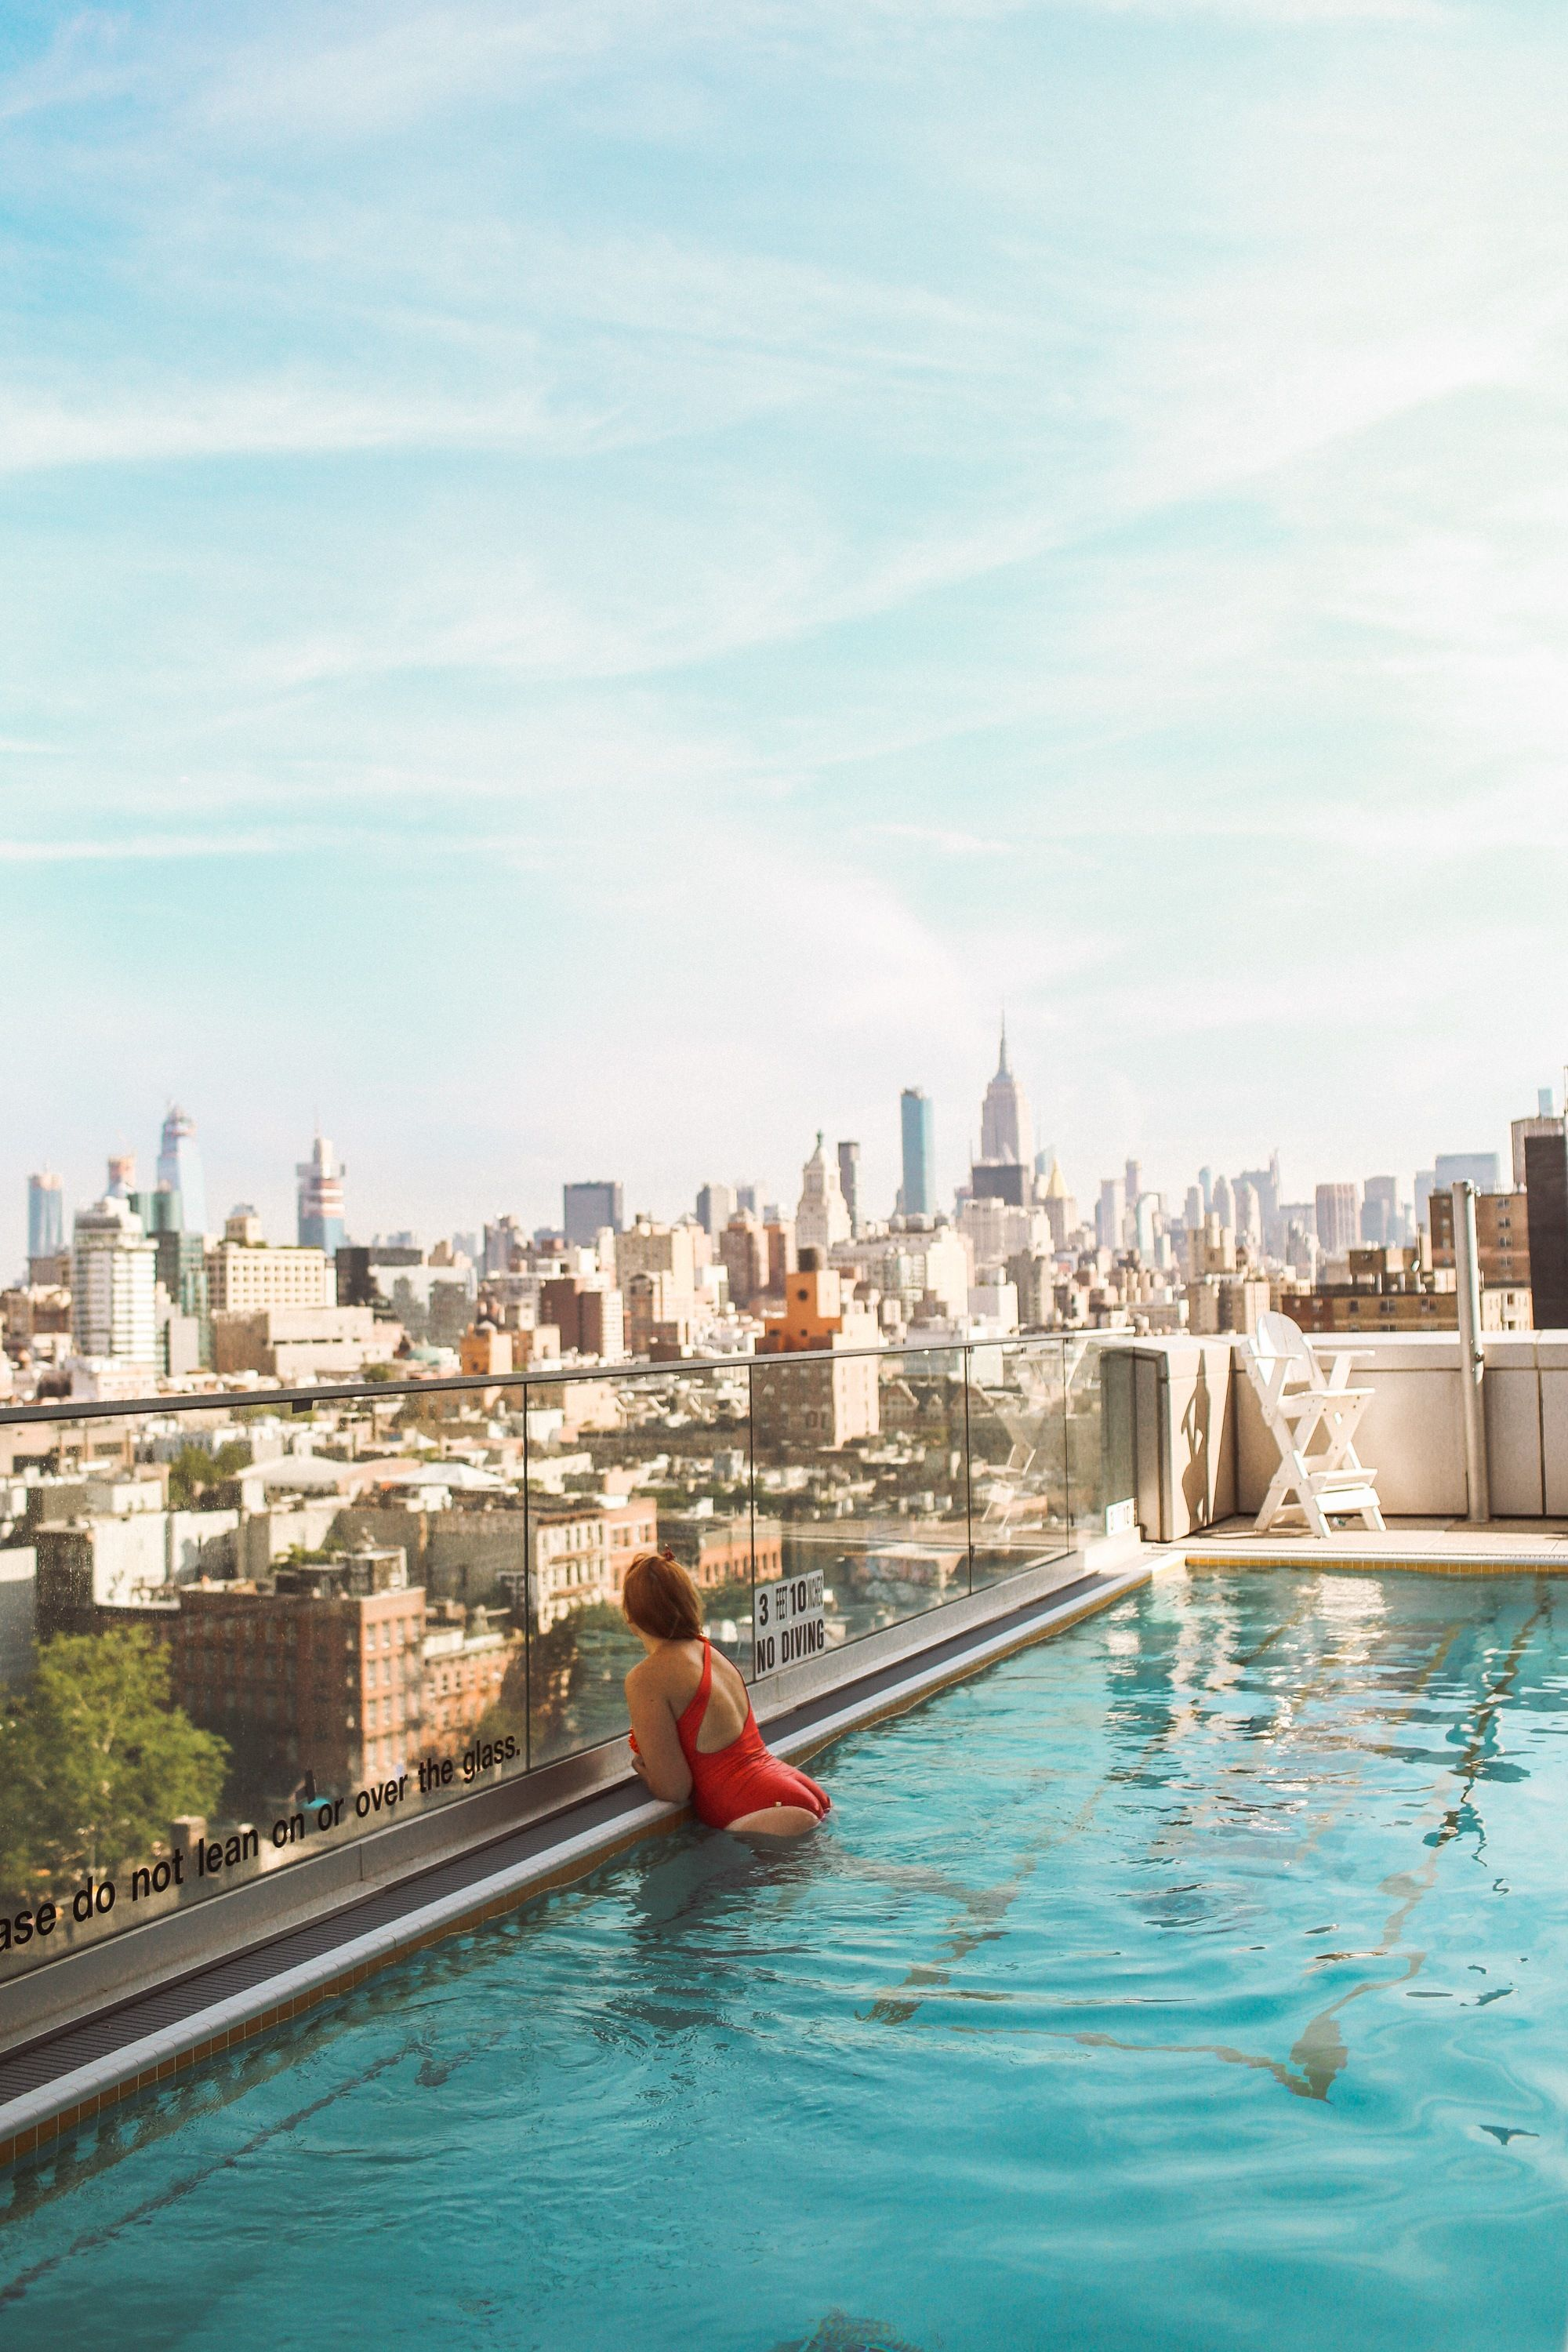 New York City Travel Guide For First Time Visitors City Travel New York City Travel Pool City